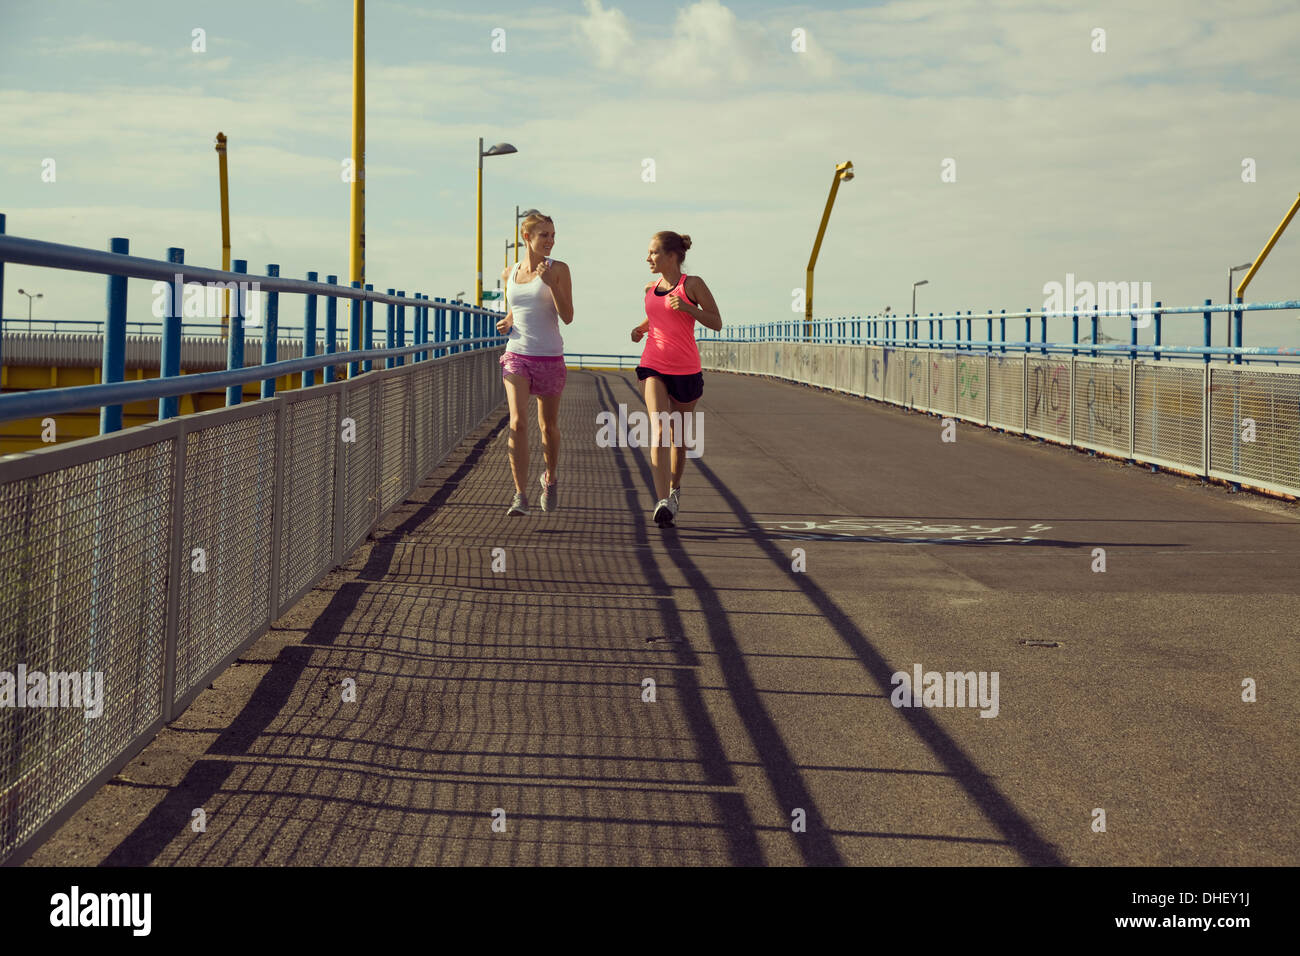 Young female joggers running on bridge - Stock Image